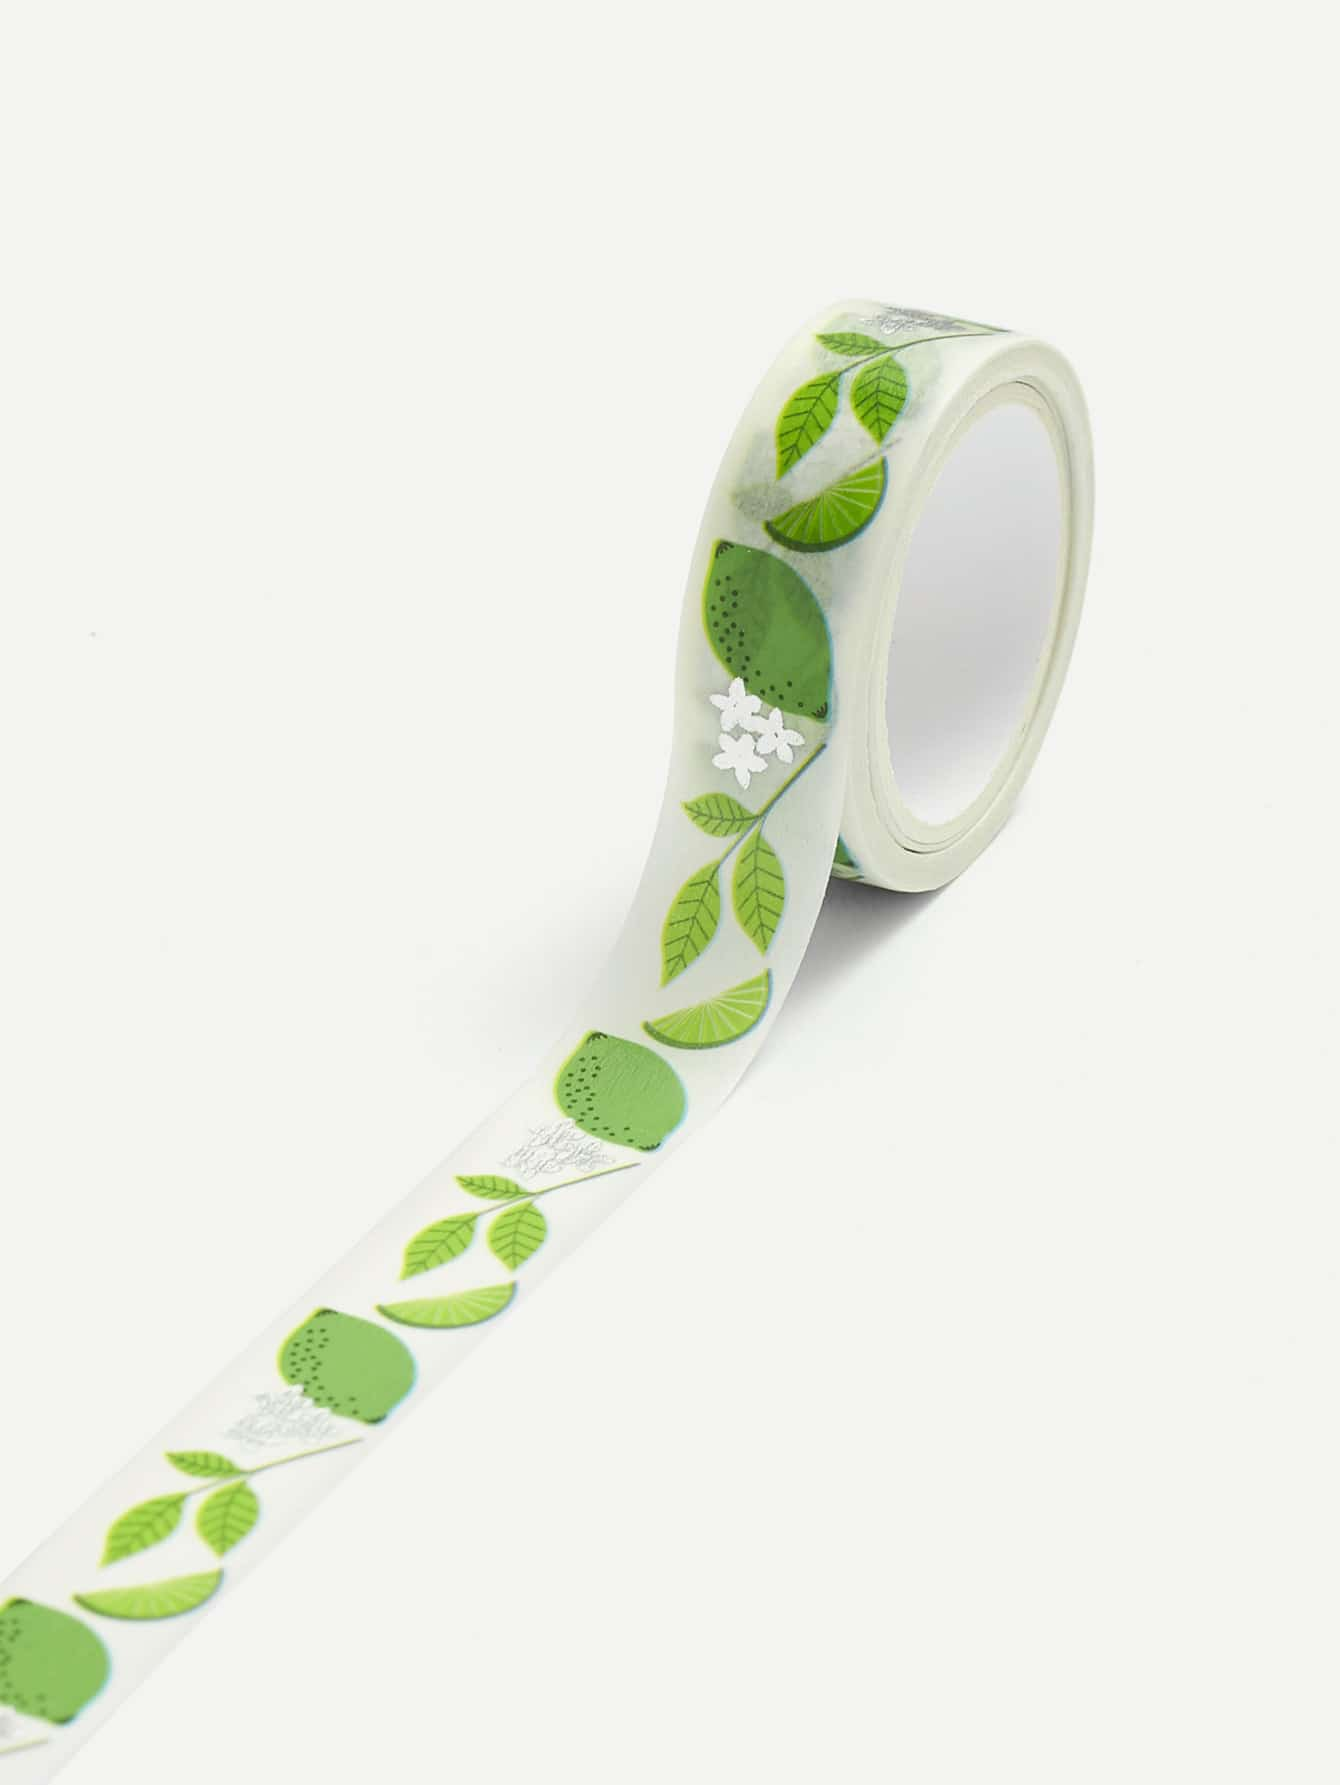 Leaf Print Masking Tape skone 5051 luminous pointers quartz watch men rotatable bezel wristwatch